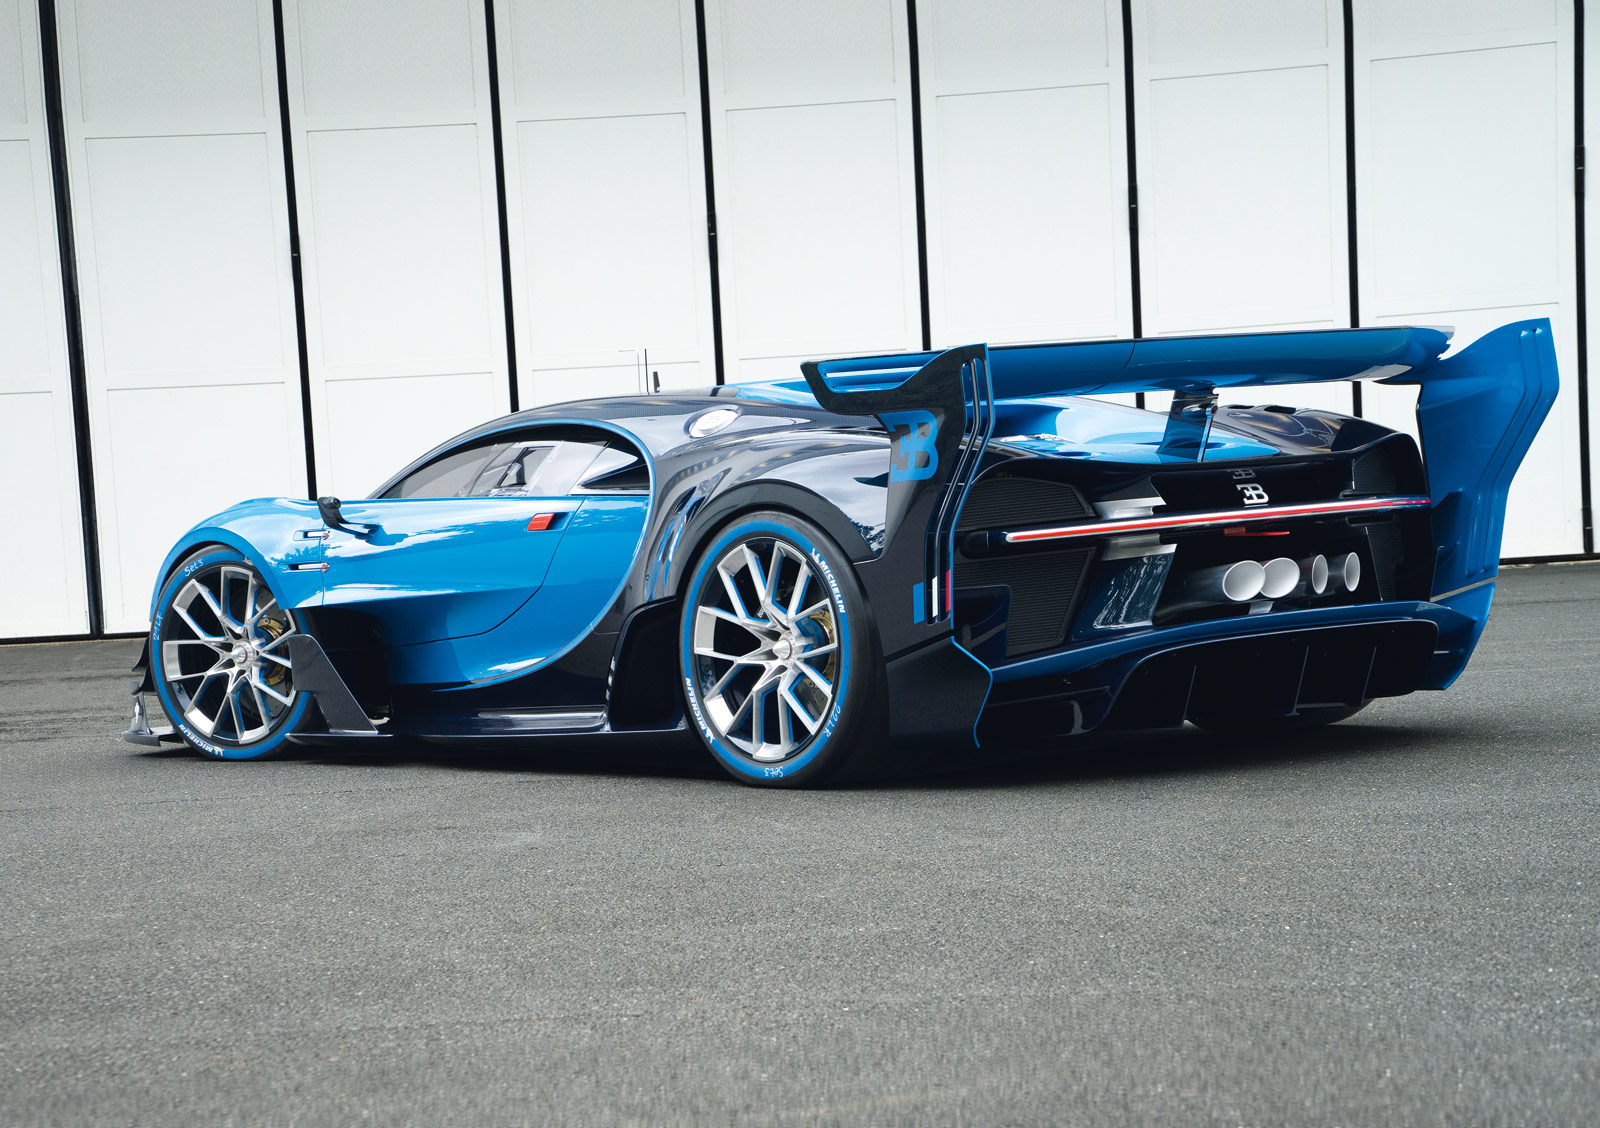 Chiron Amp Vision Gran Turismo Head To Monterey Car Week 2016